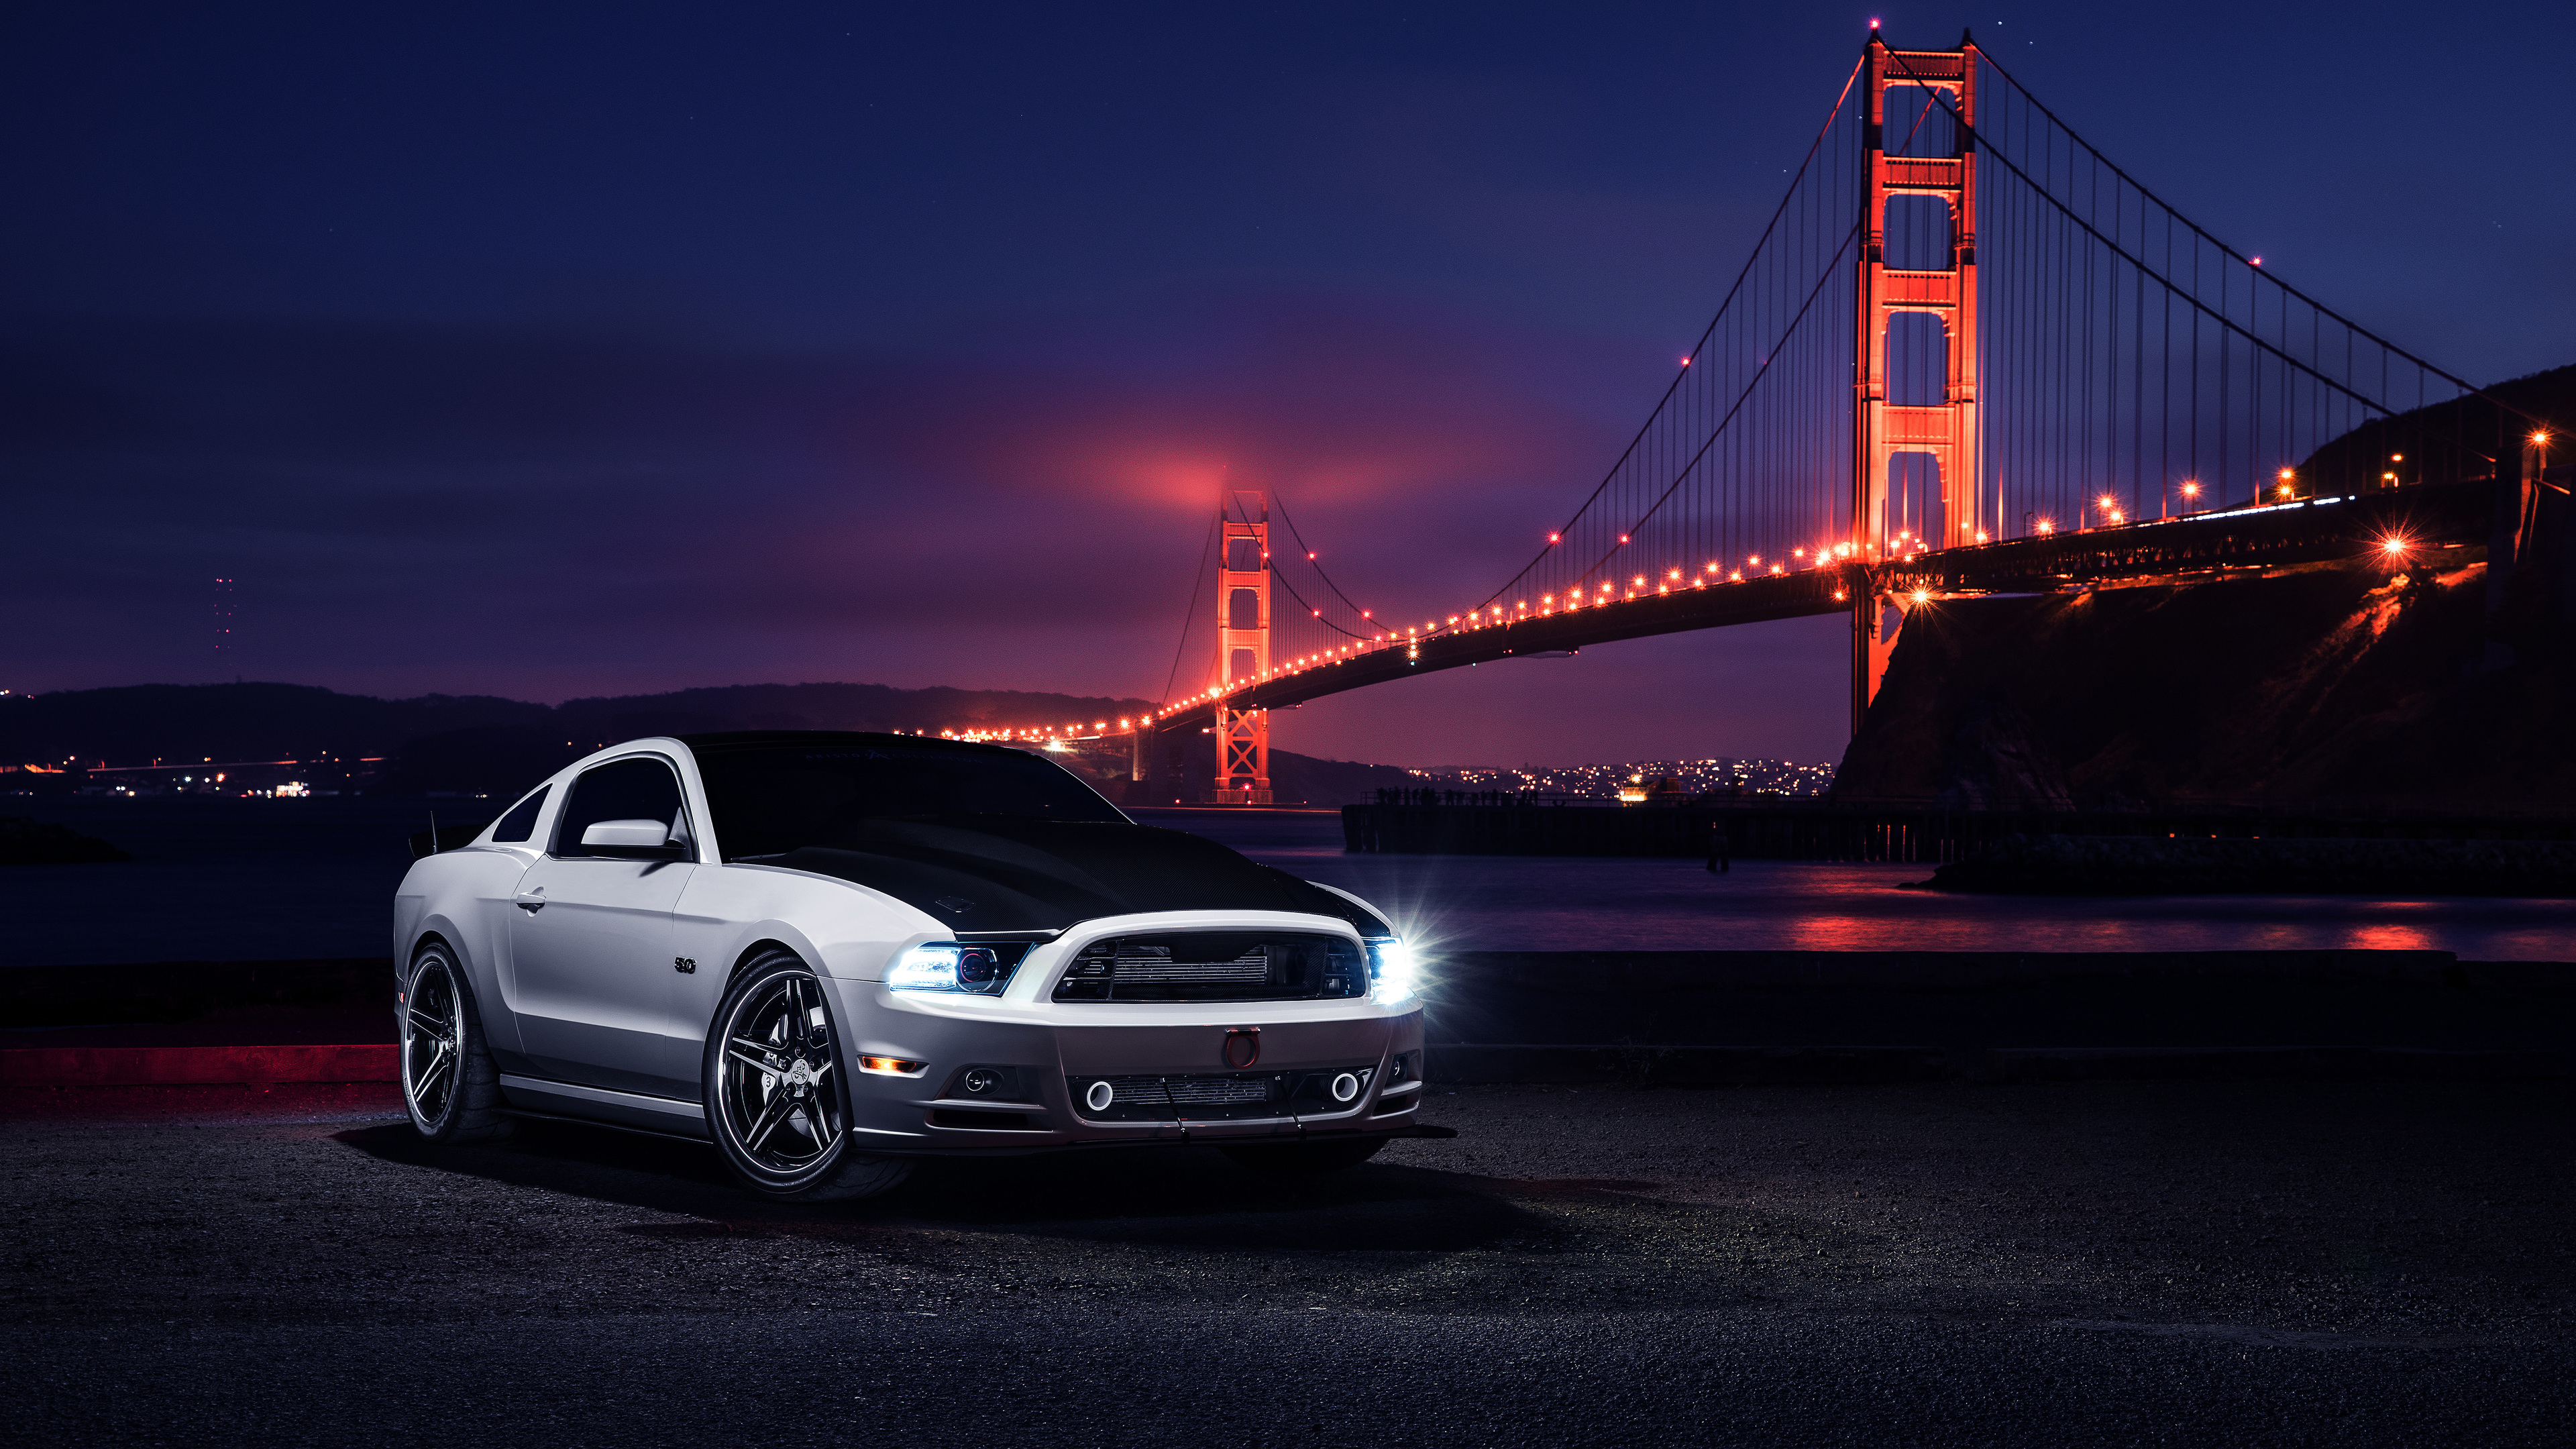 ford mustang golden gate bridge 4k 1556185254 - Ford Mustang Golden Gate Bridge 4k - hd-wallpapers, ford mustang wallpapers, cars wallpapers, 5k wallpapers, 4k-wallpapers, 2018 cars wallpapers